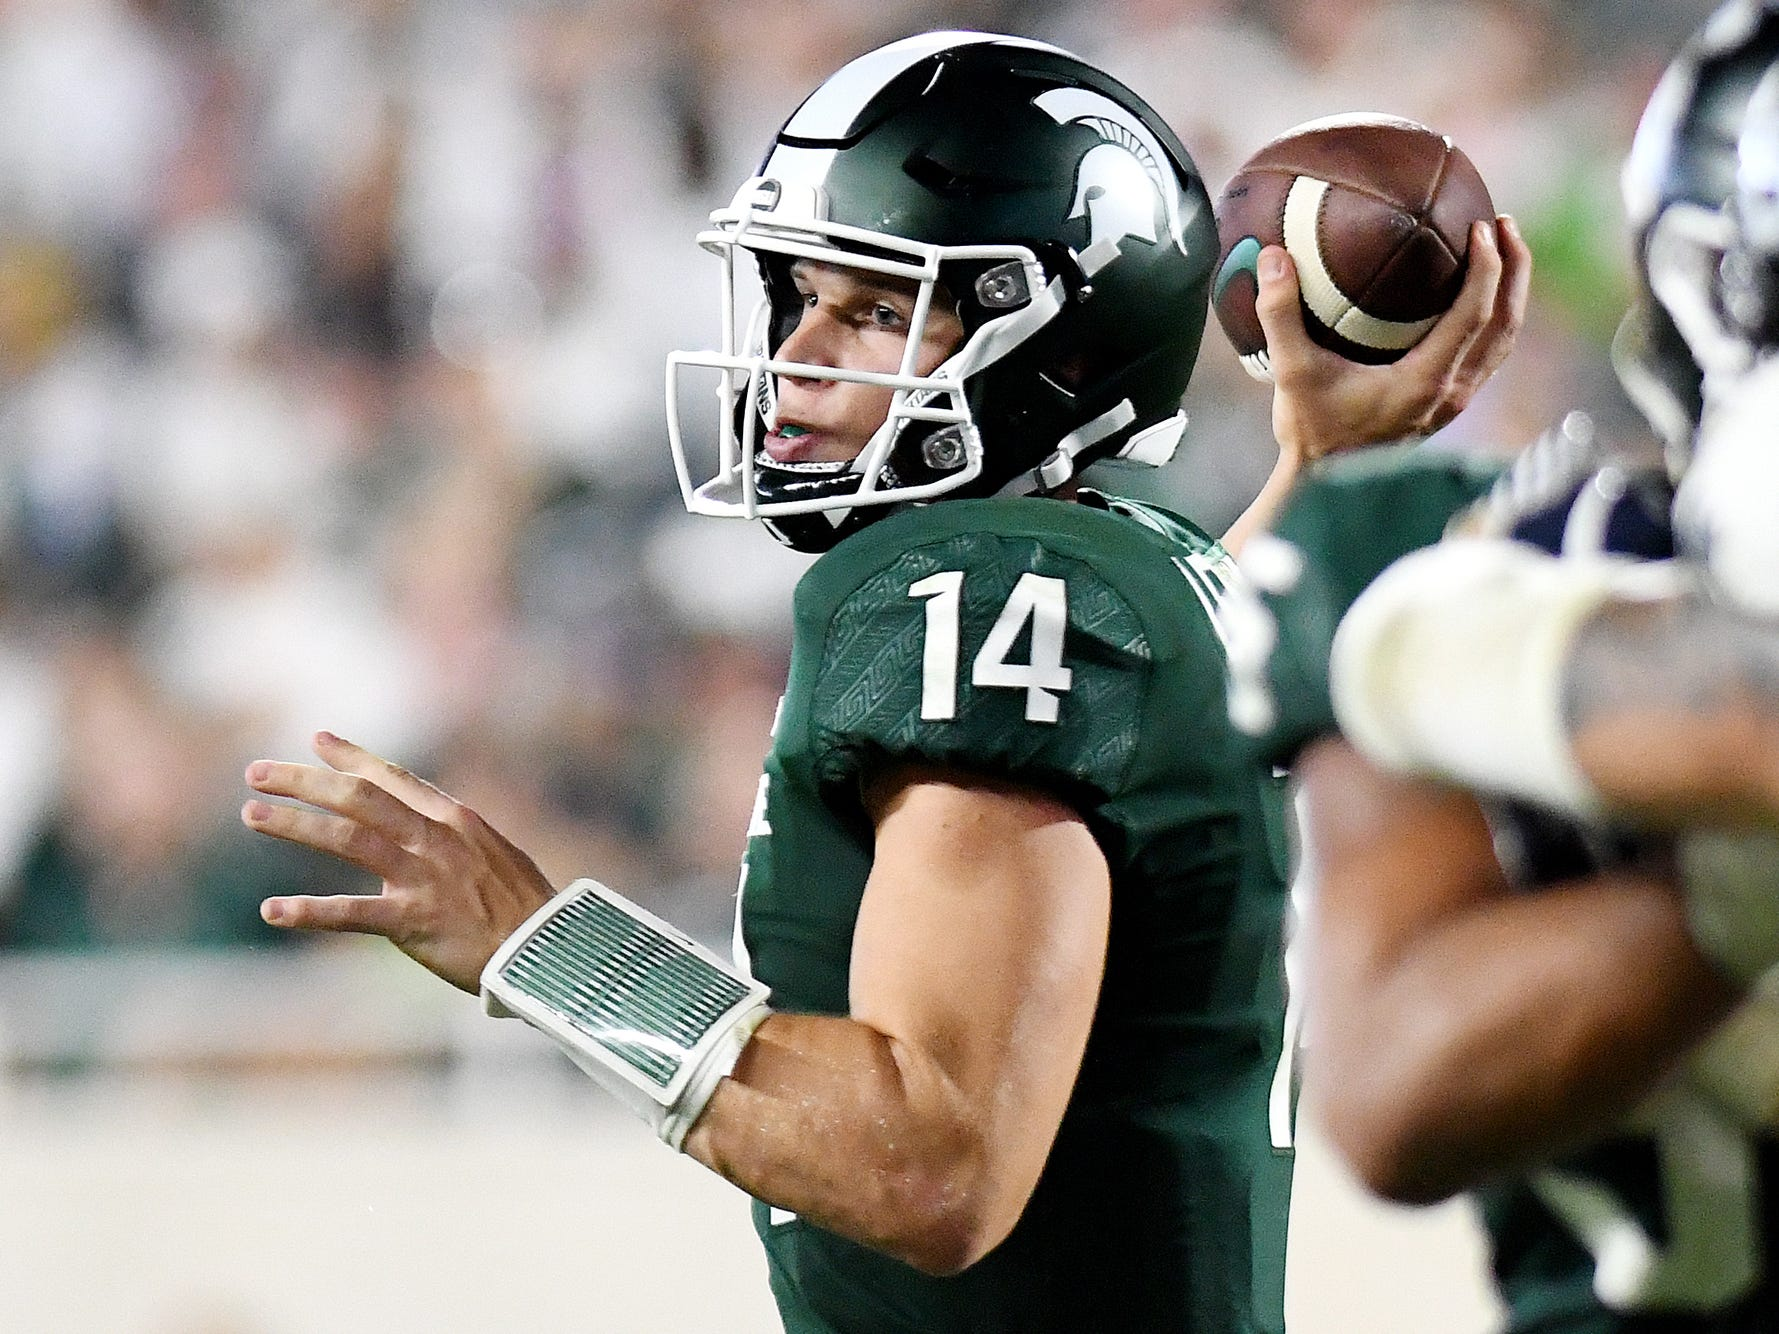 Michigan State's Brian Lewerke passes the ball during the fourth quarter on Friday, Aug. 31, 2018, at Spartan Stadium in East Lansing.